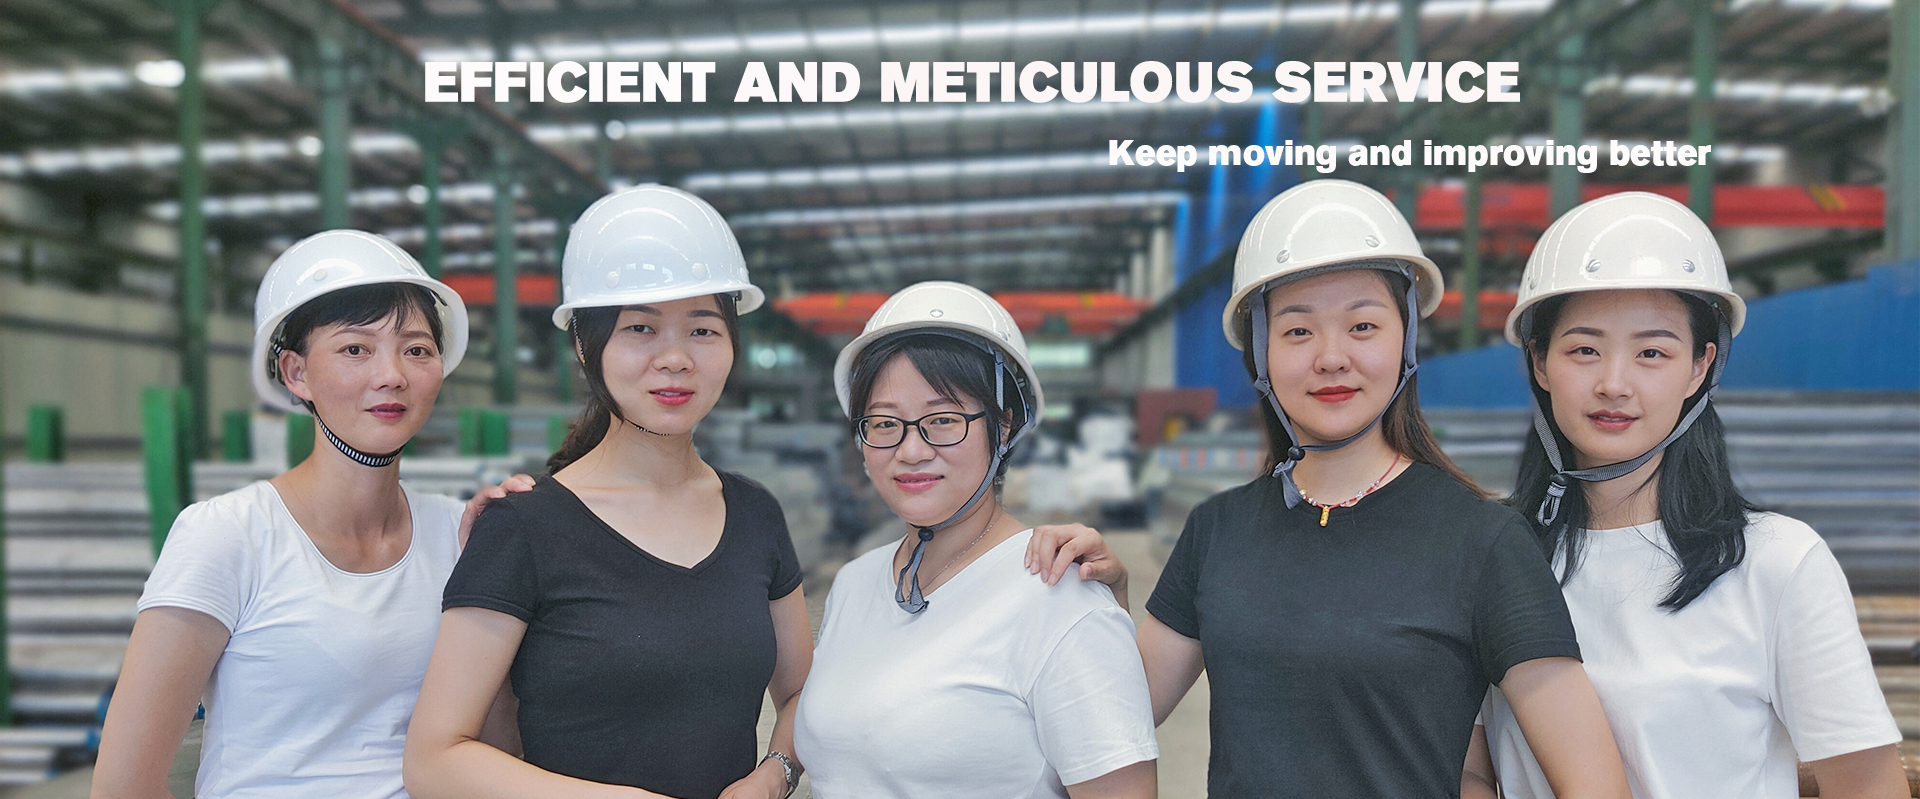 Efficient and Meticulous Service